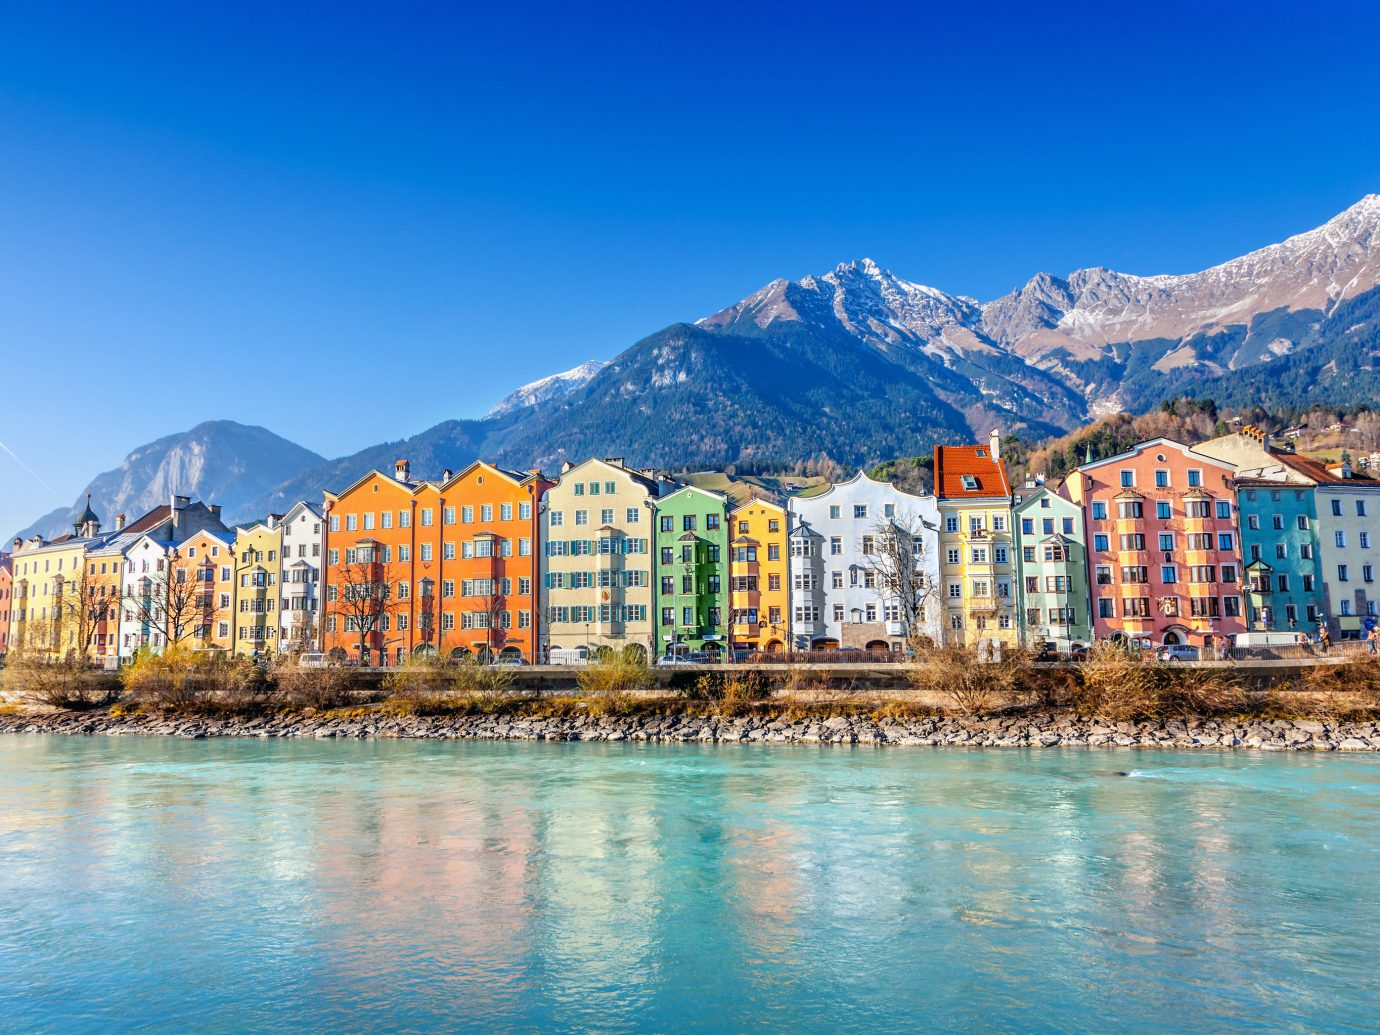 Austria England europe France Germany Italy Outdoors + Adventure Portugal Spain Trip Ideas reflection sky City water mountain Town Sea mountain range Lake Coast tourism daytime mount scenery cityscape alps Winter bay landscape panorama